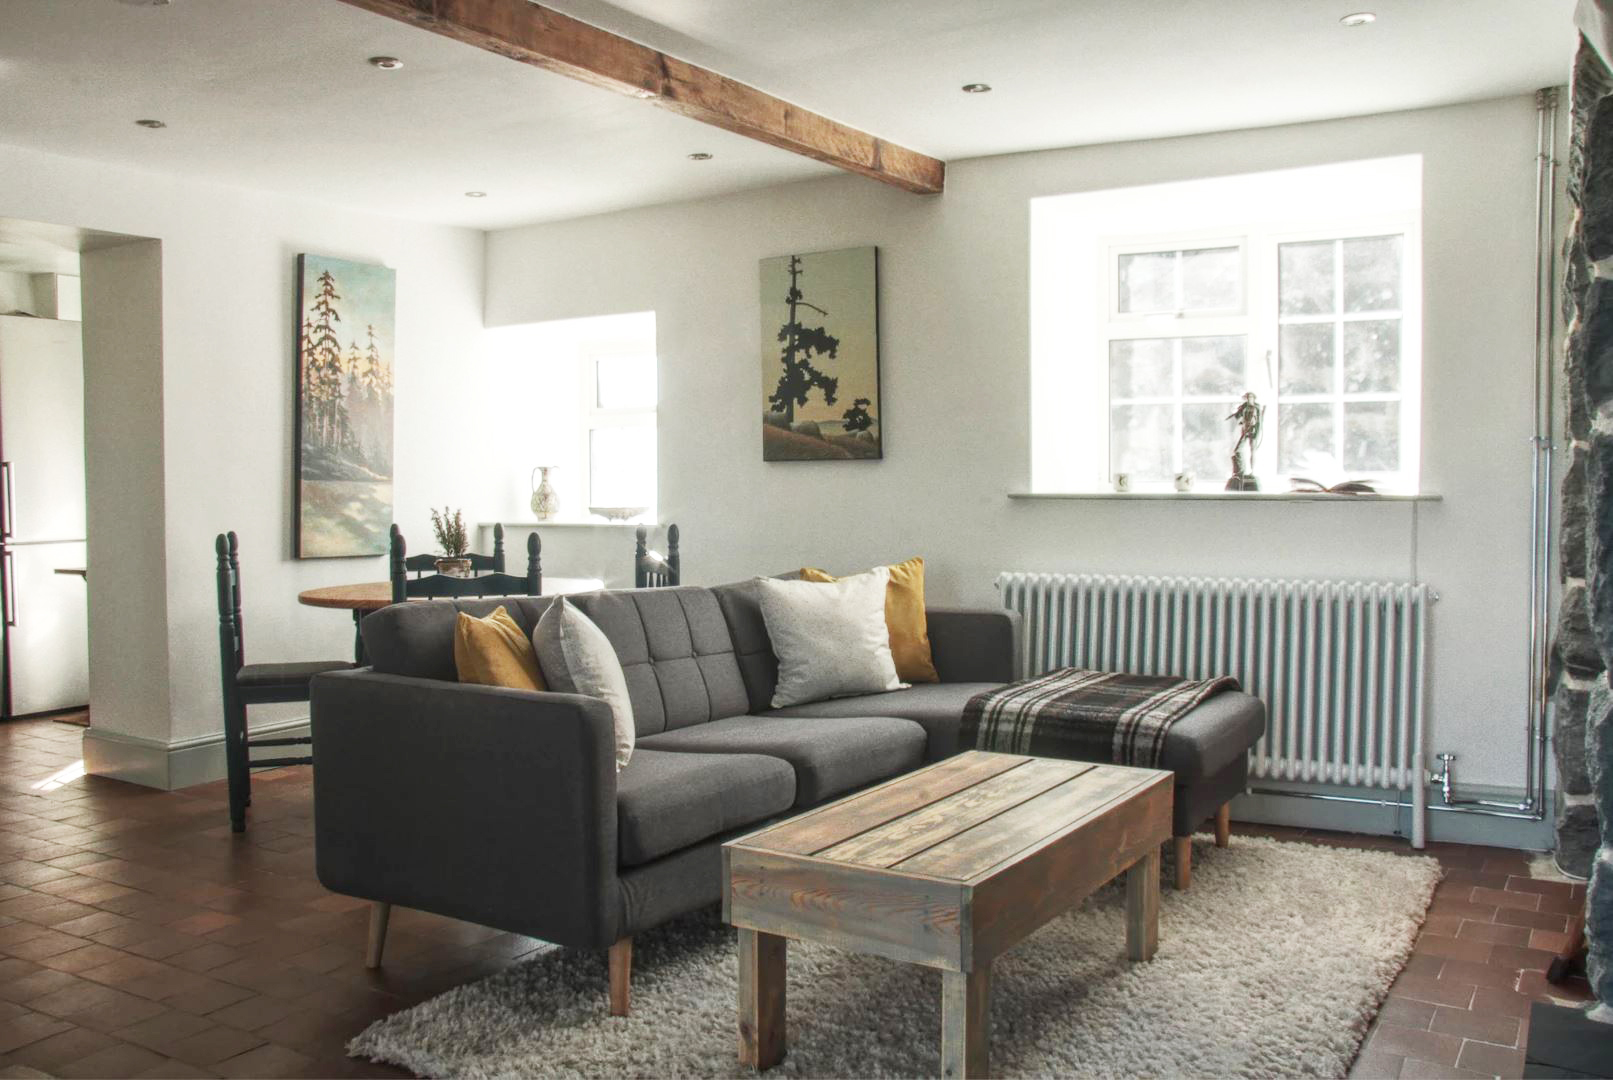 Rustic beams abound in the stylish living room. Image: Cwellyn Dream